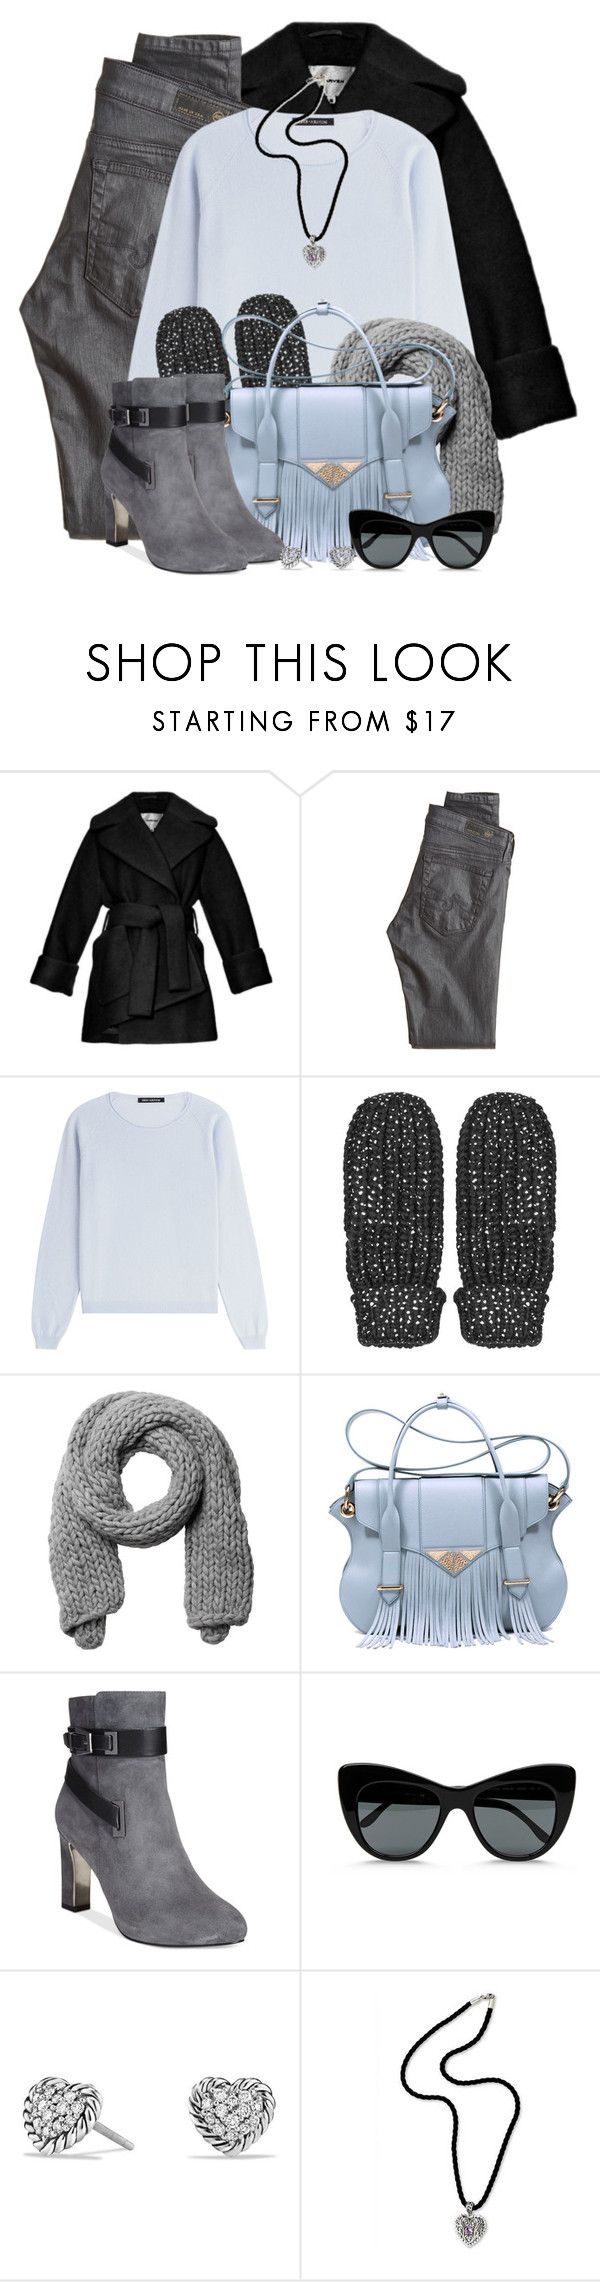 """""""Fringed Tote & Ankle Boots"""" by brendariley-1 ❤ liked on Polyvore featuring Carven, AG Adriano Goldschmied, IRIS VON ARNIM, Topshop, Monki, Ella Rabener, Alfani, STELLA McCARTNEY, David Yurman and NOVICA"""